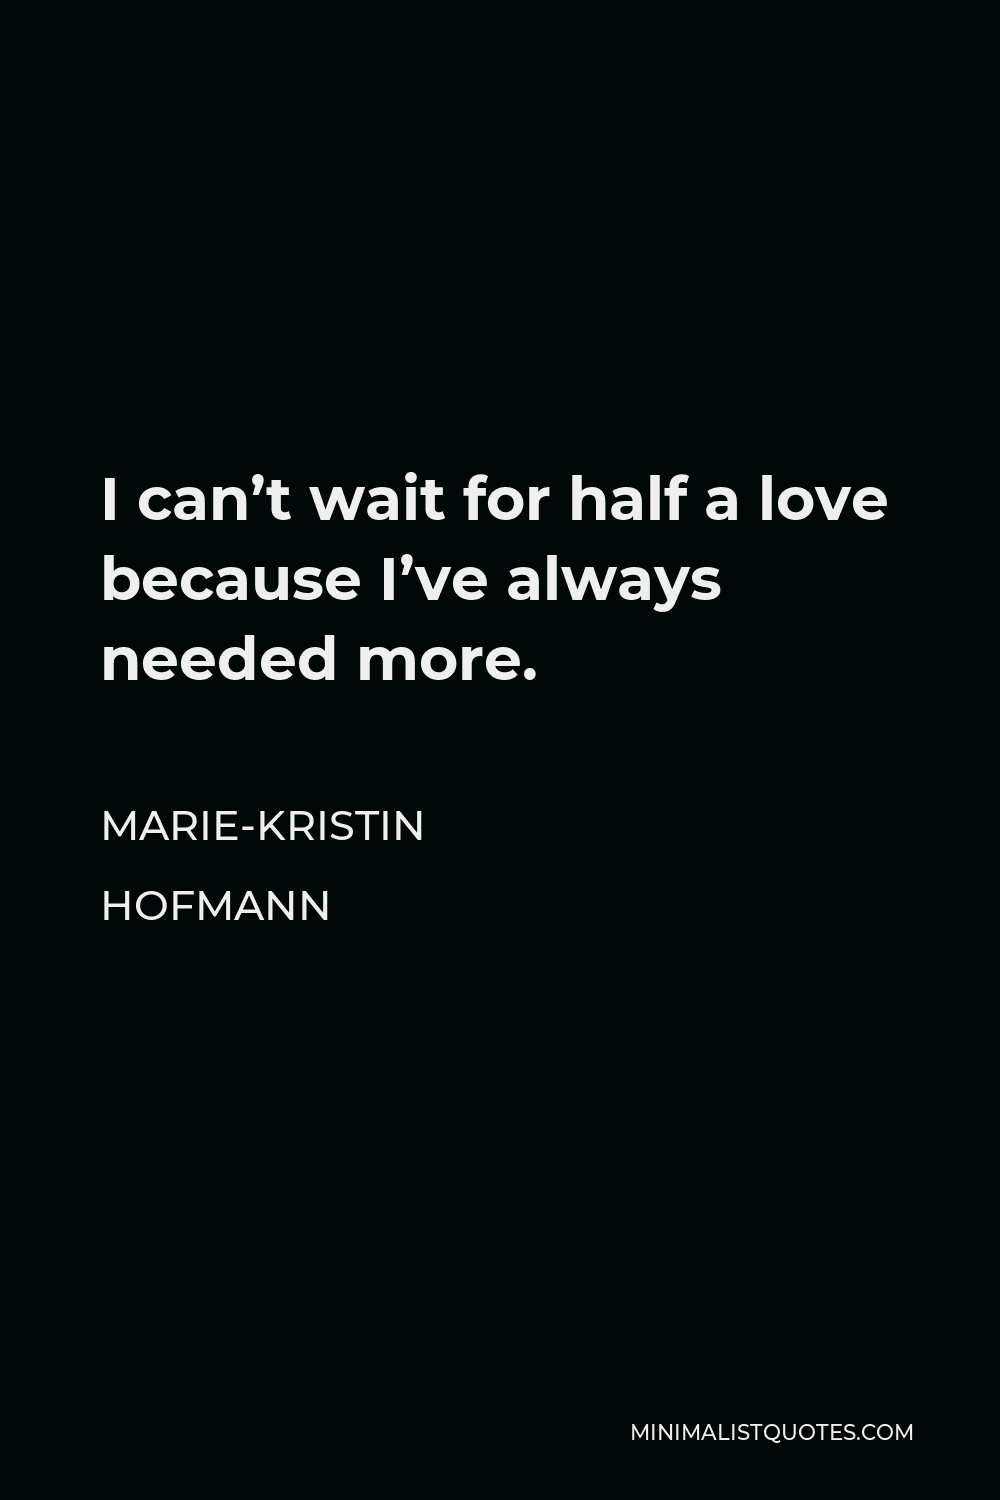 Marie-Kristin Hofmann Quote - I can't wait for half a love because I've always needed more.